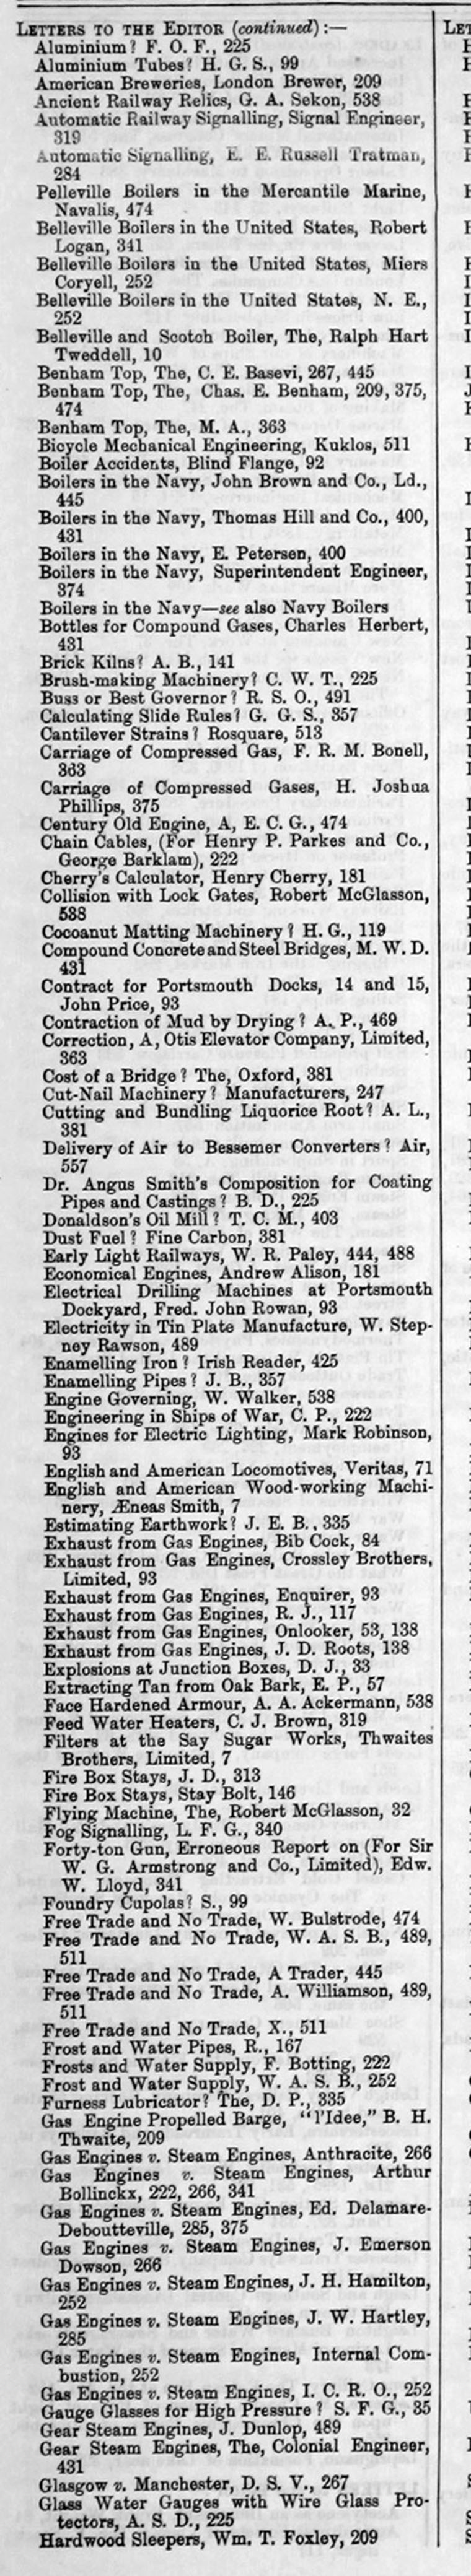 The Engineer 1895 Jan-Jun: Index: Miscellaneous - Graces Guide